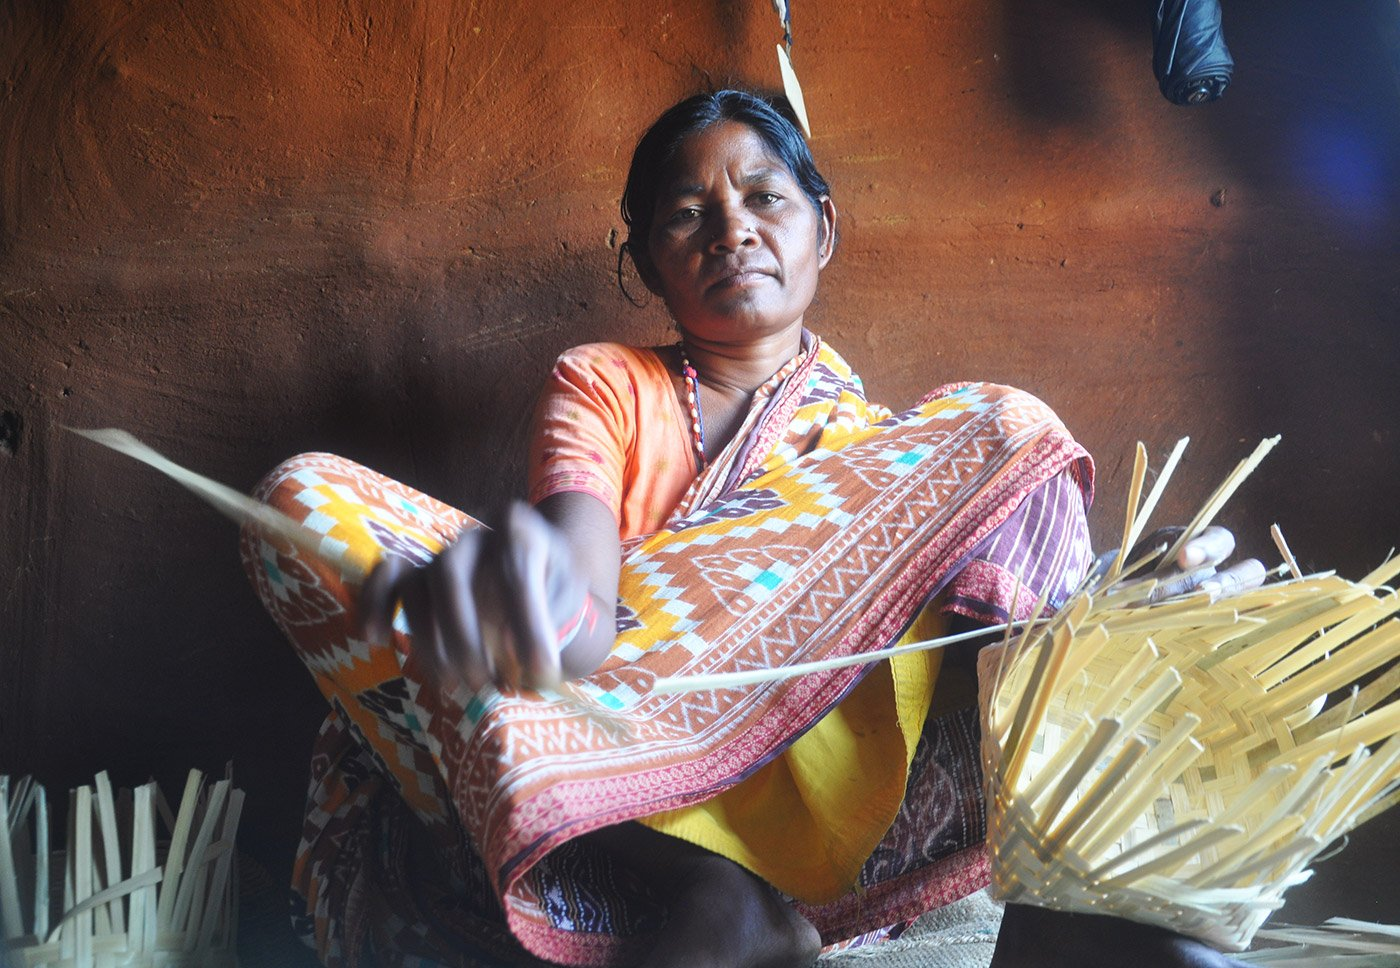 Kamla Paharia weaving baskets